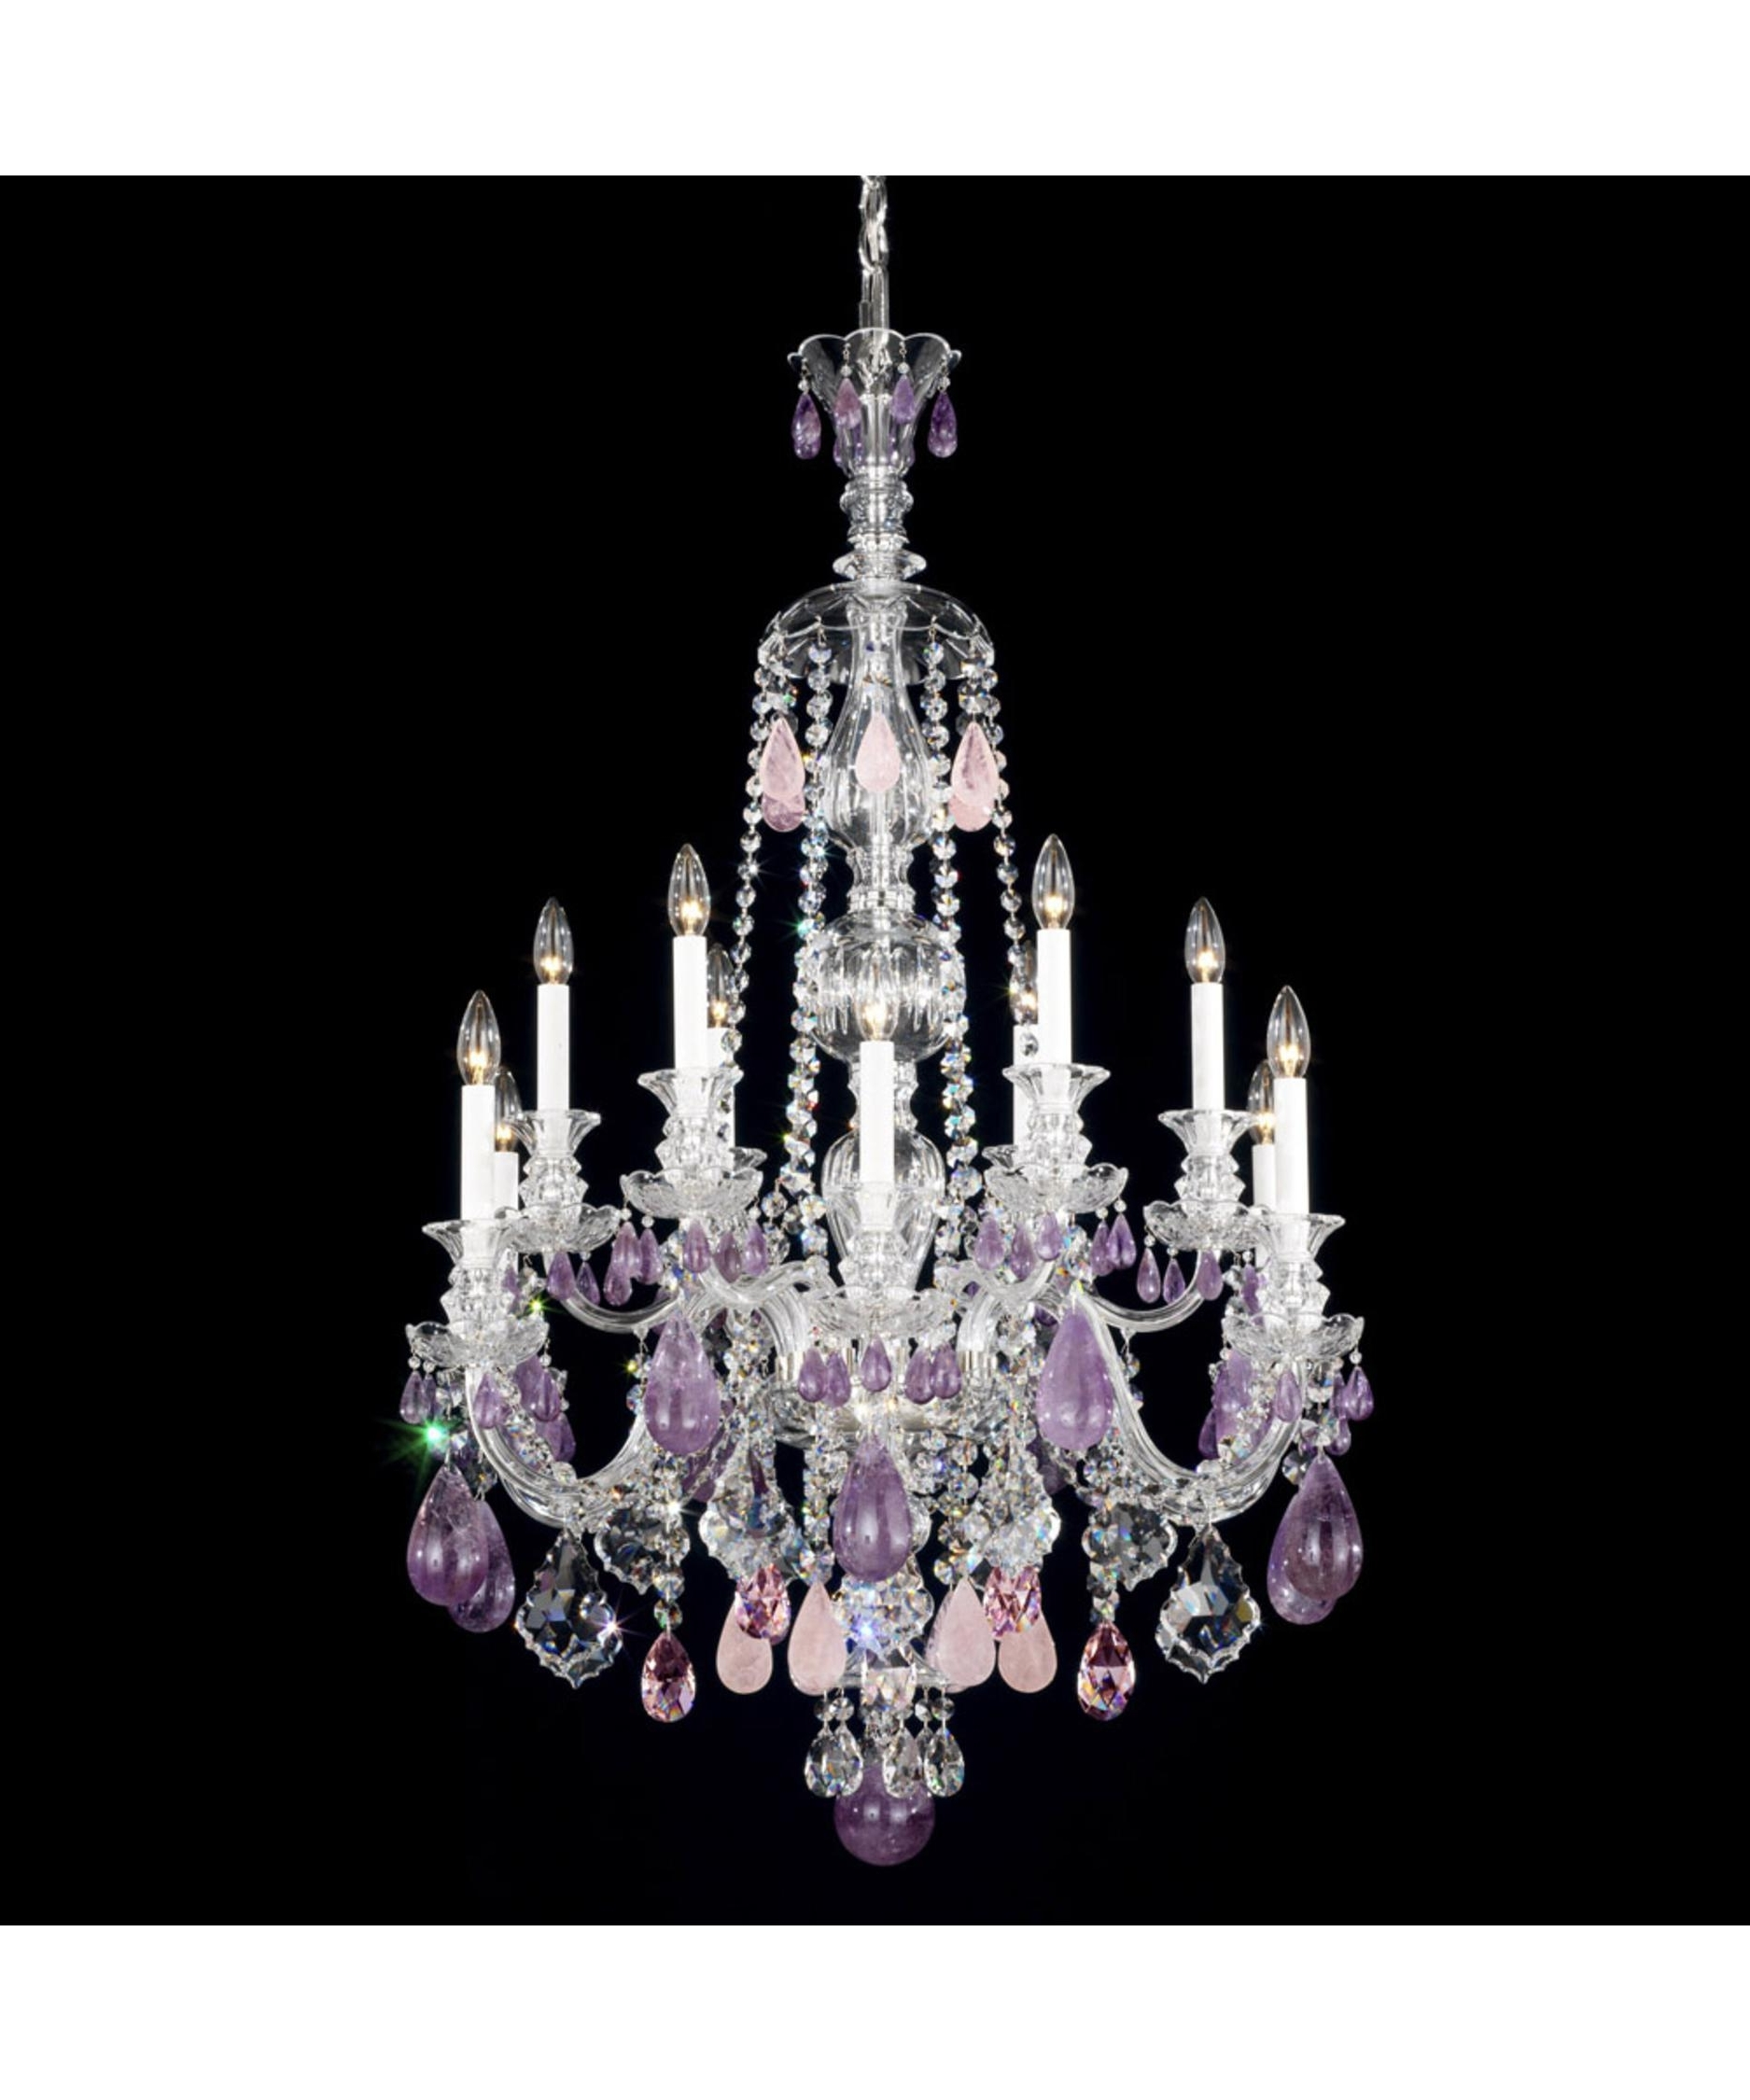 Purple Crystal Chandelier Lighting Pertaining To Well Known Schonbek 5508 Hamilton Rock Crystal 30 Inch Wide 12 Light Chandelier (View 17 of 20)